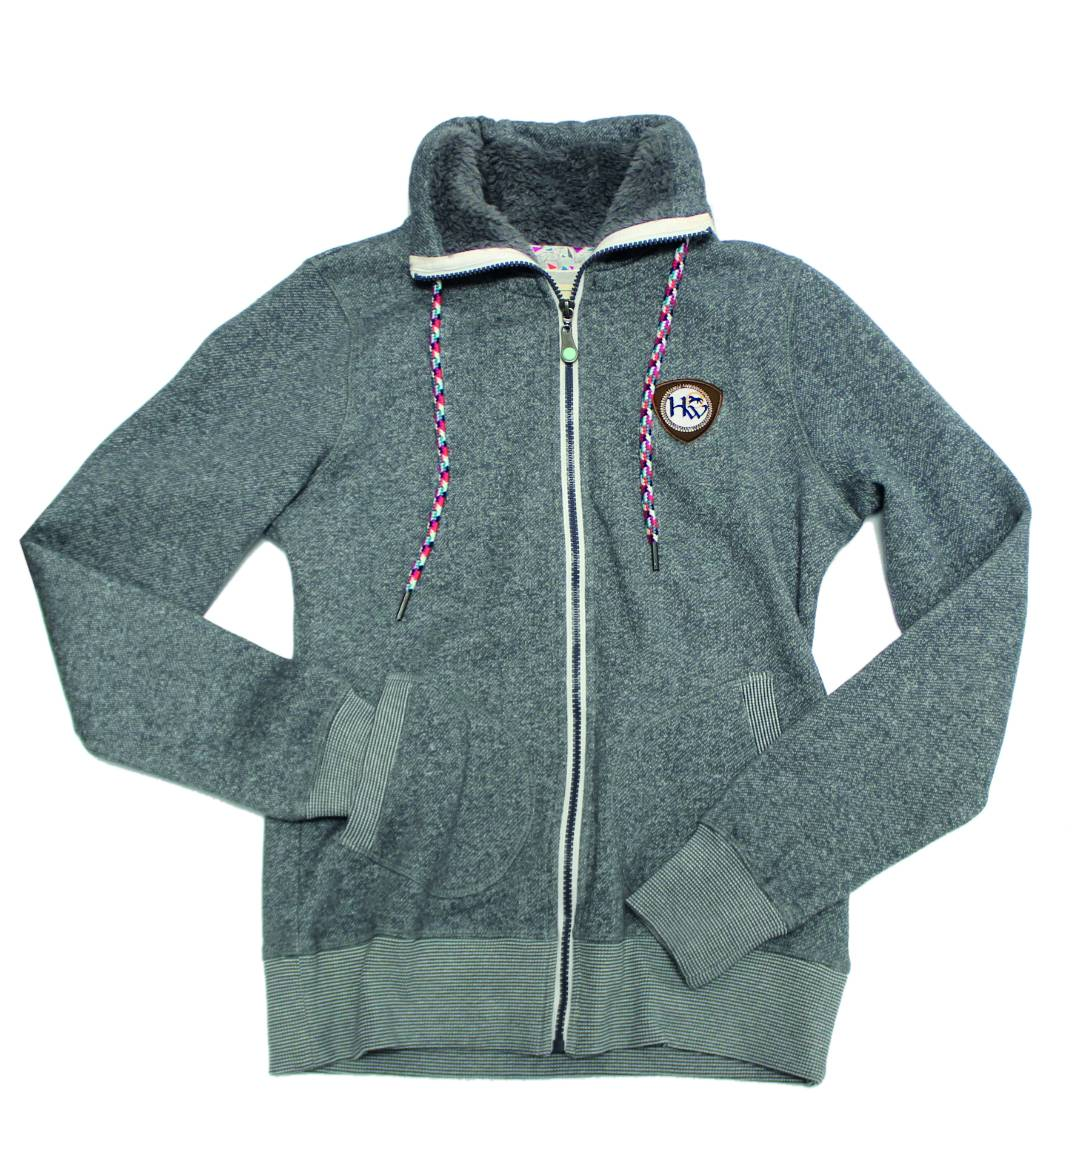 Horseware Ailis High Neck Zip - Ladies